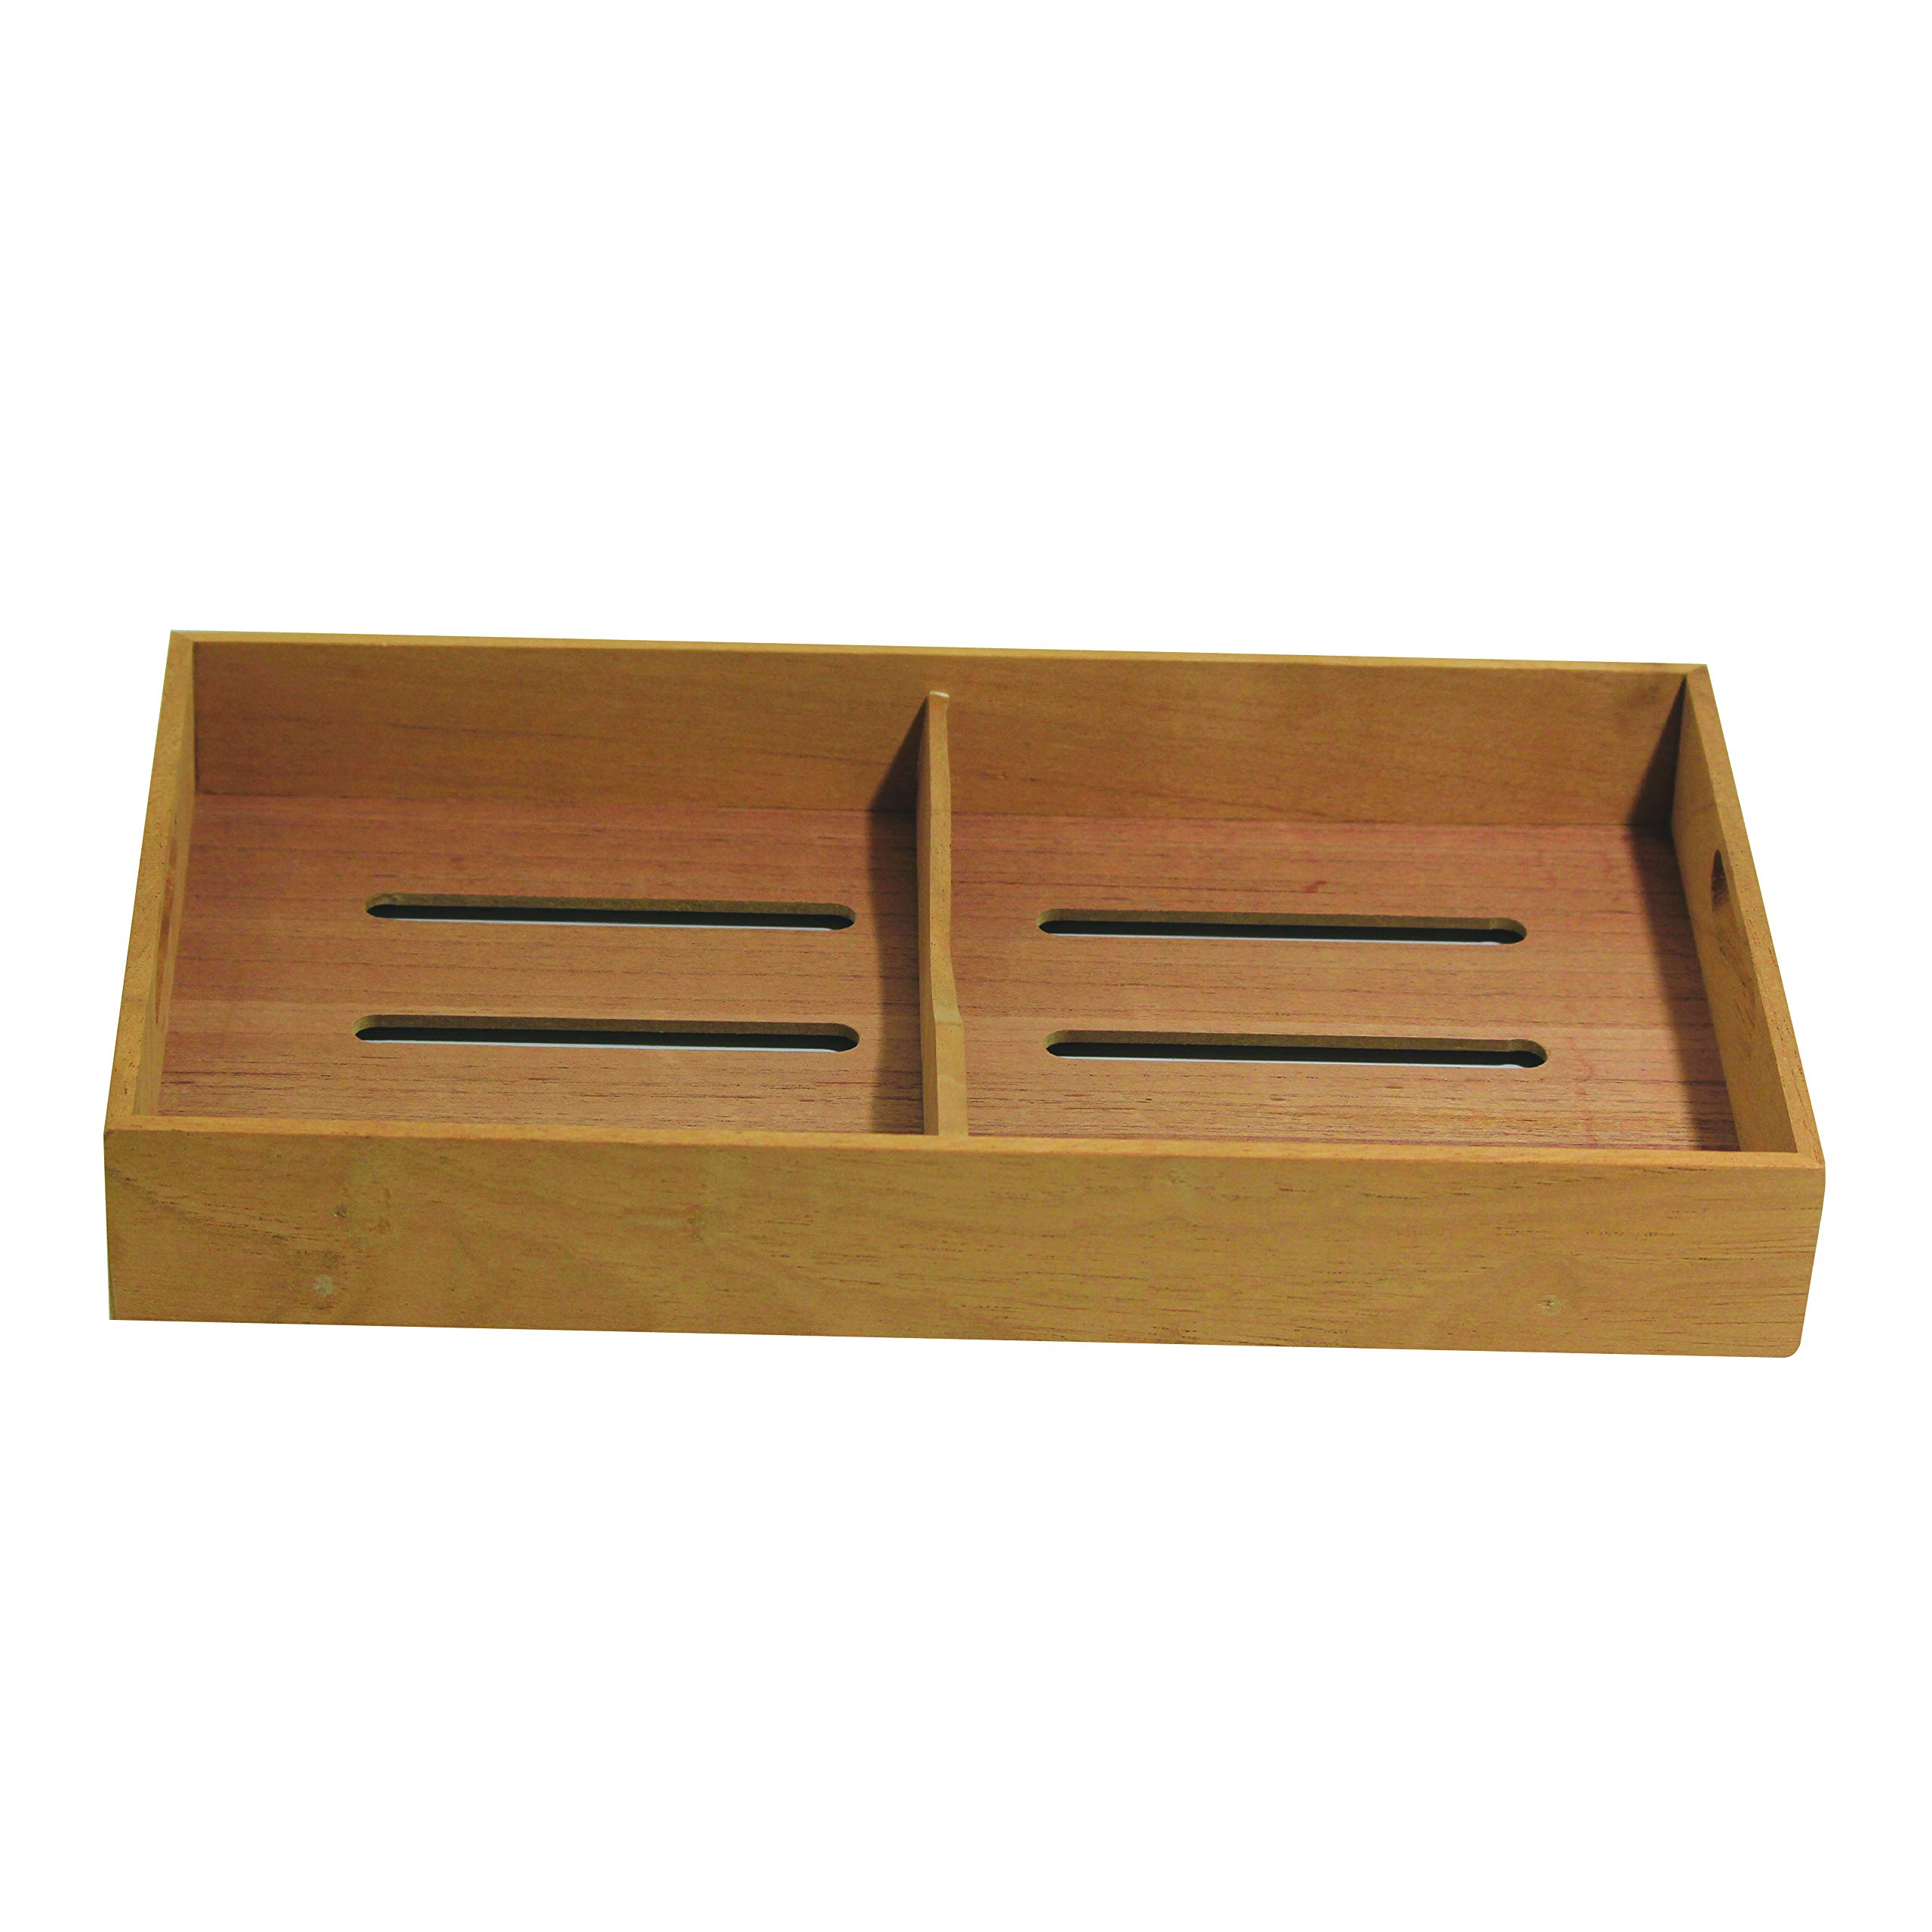 """Sigara Brand Solid Spanish Cedar Cigar Tray with One Adjustable Divider, Fits Large Humidor 12.0""""x7.0""""x1.75"""""""